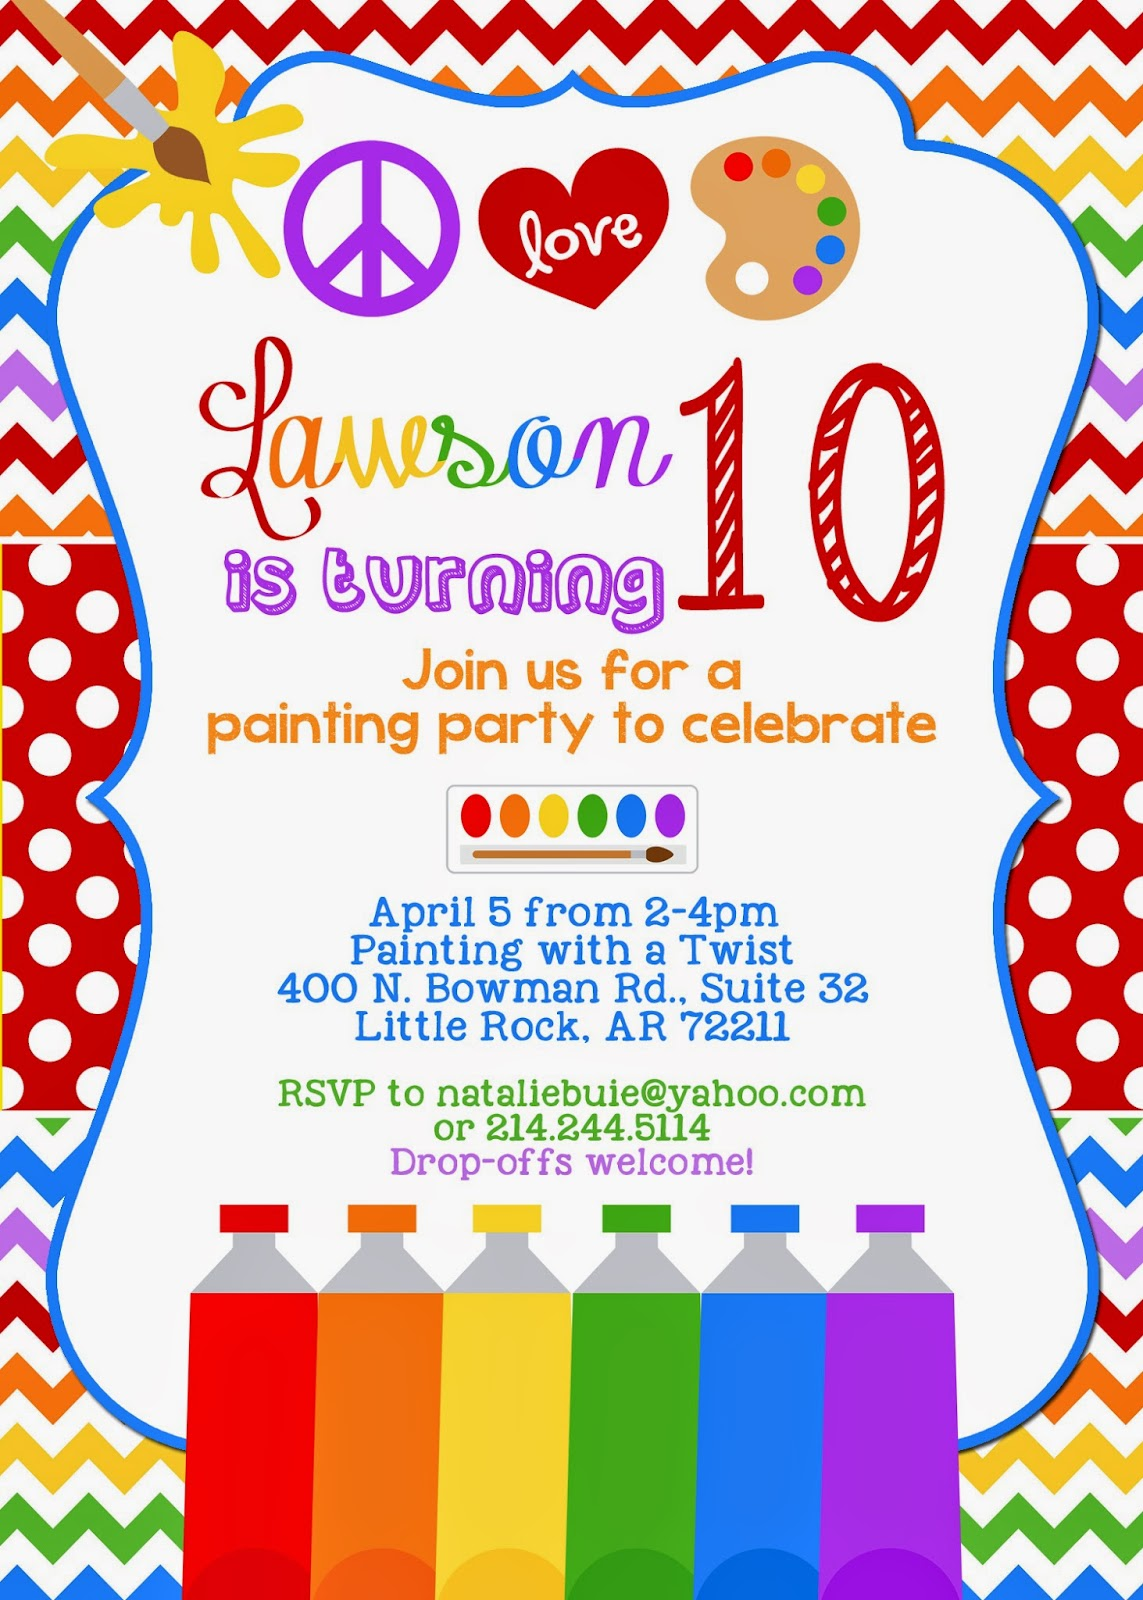 10th birthday party invitations ; the_buie_blog__lawsons_10th_birthday_party_1